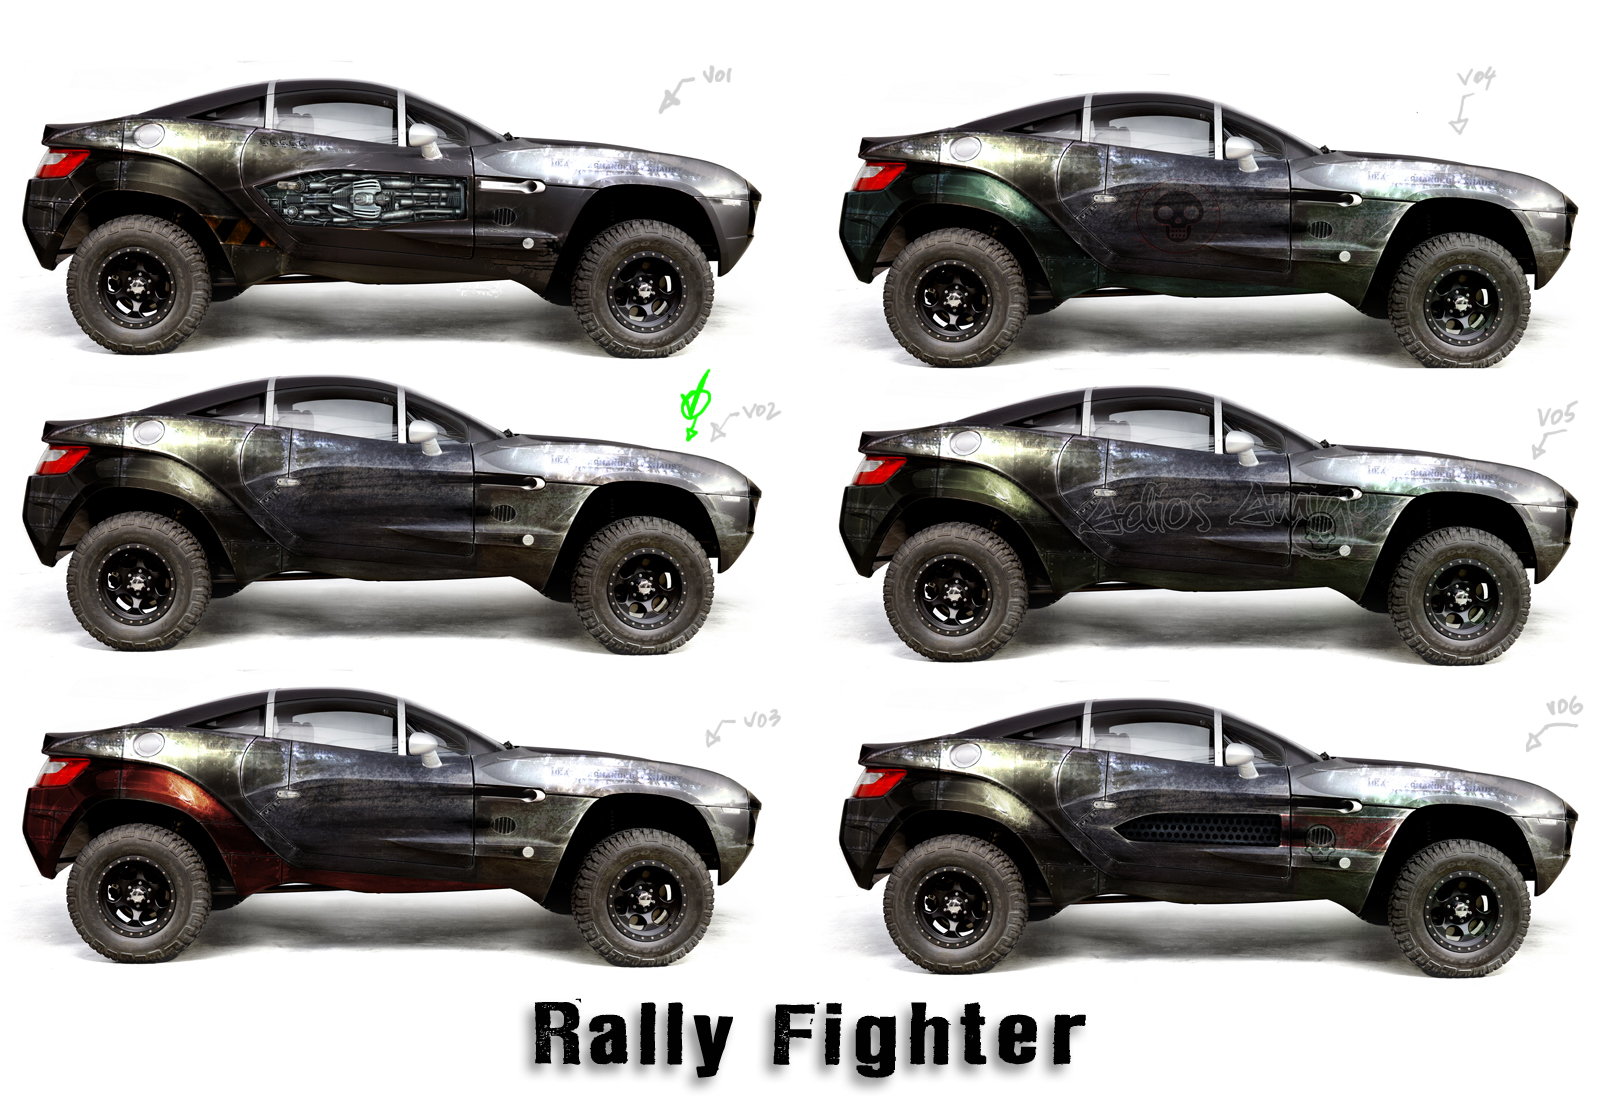 West Toad Fabrication Rally Fighter Skin Concepts